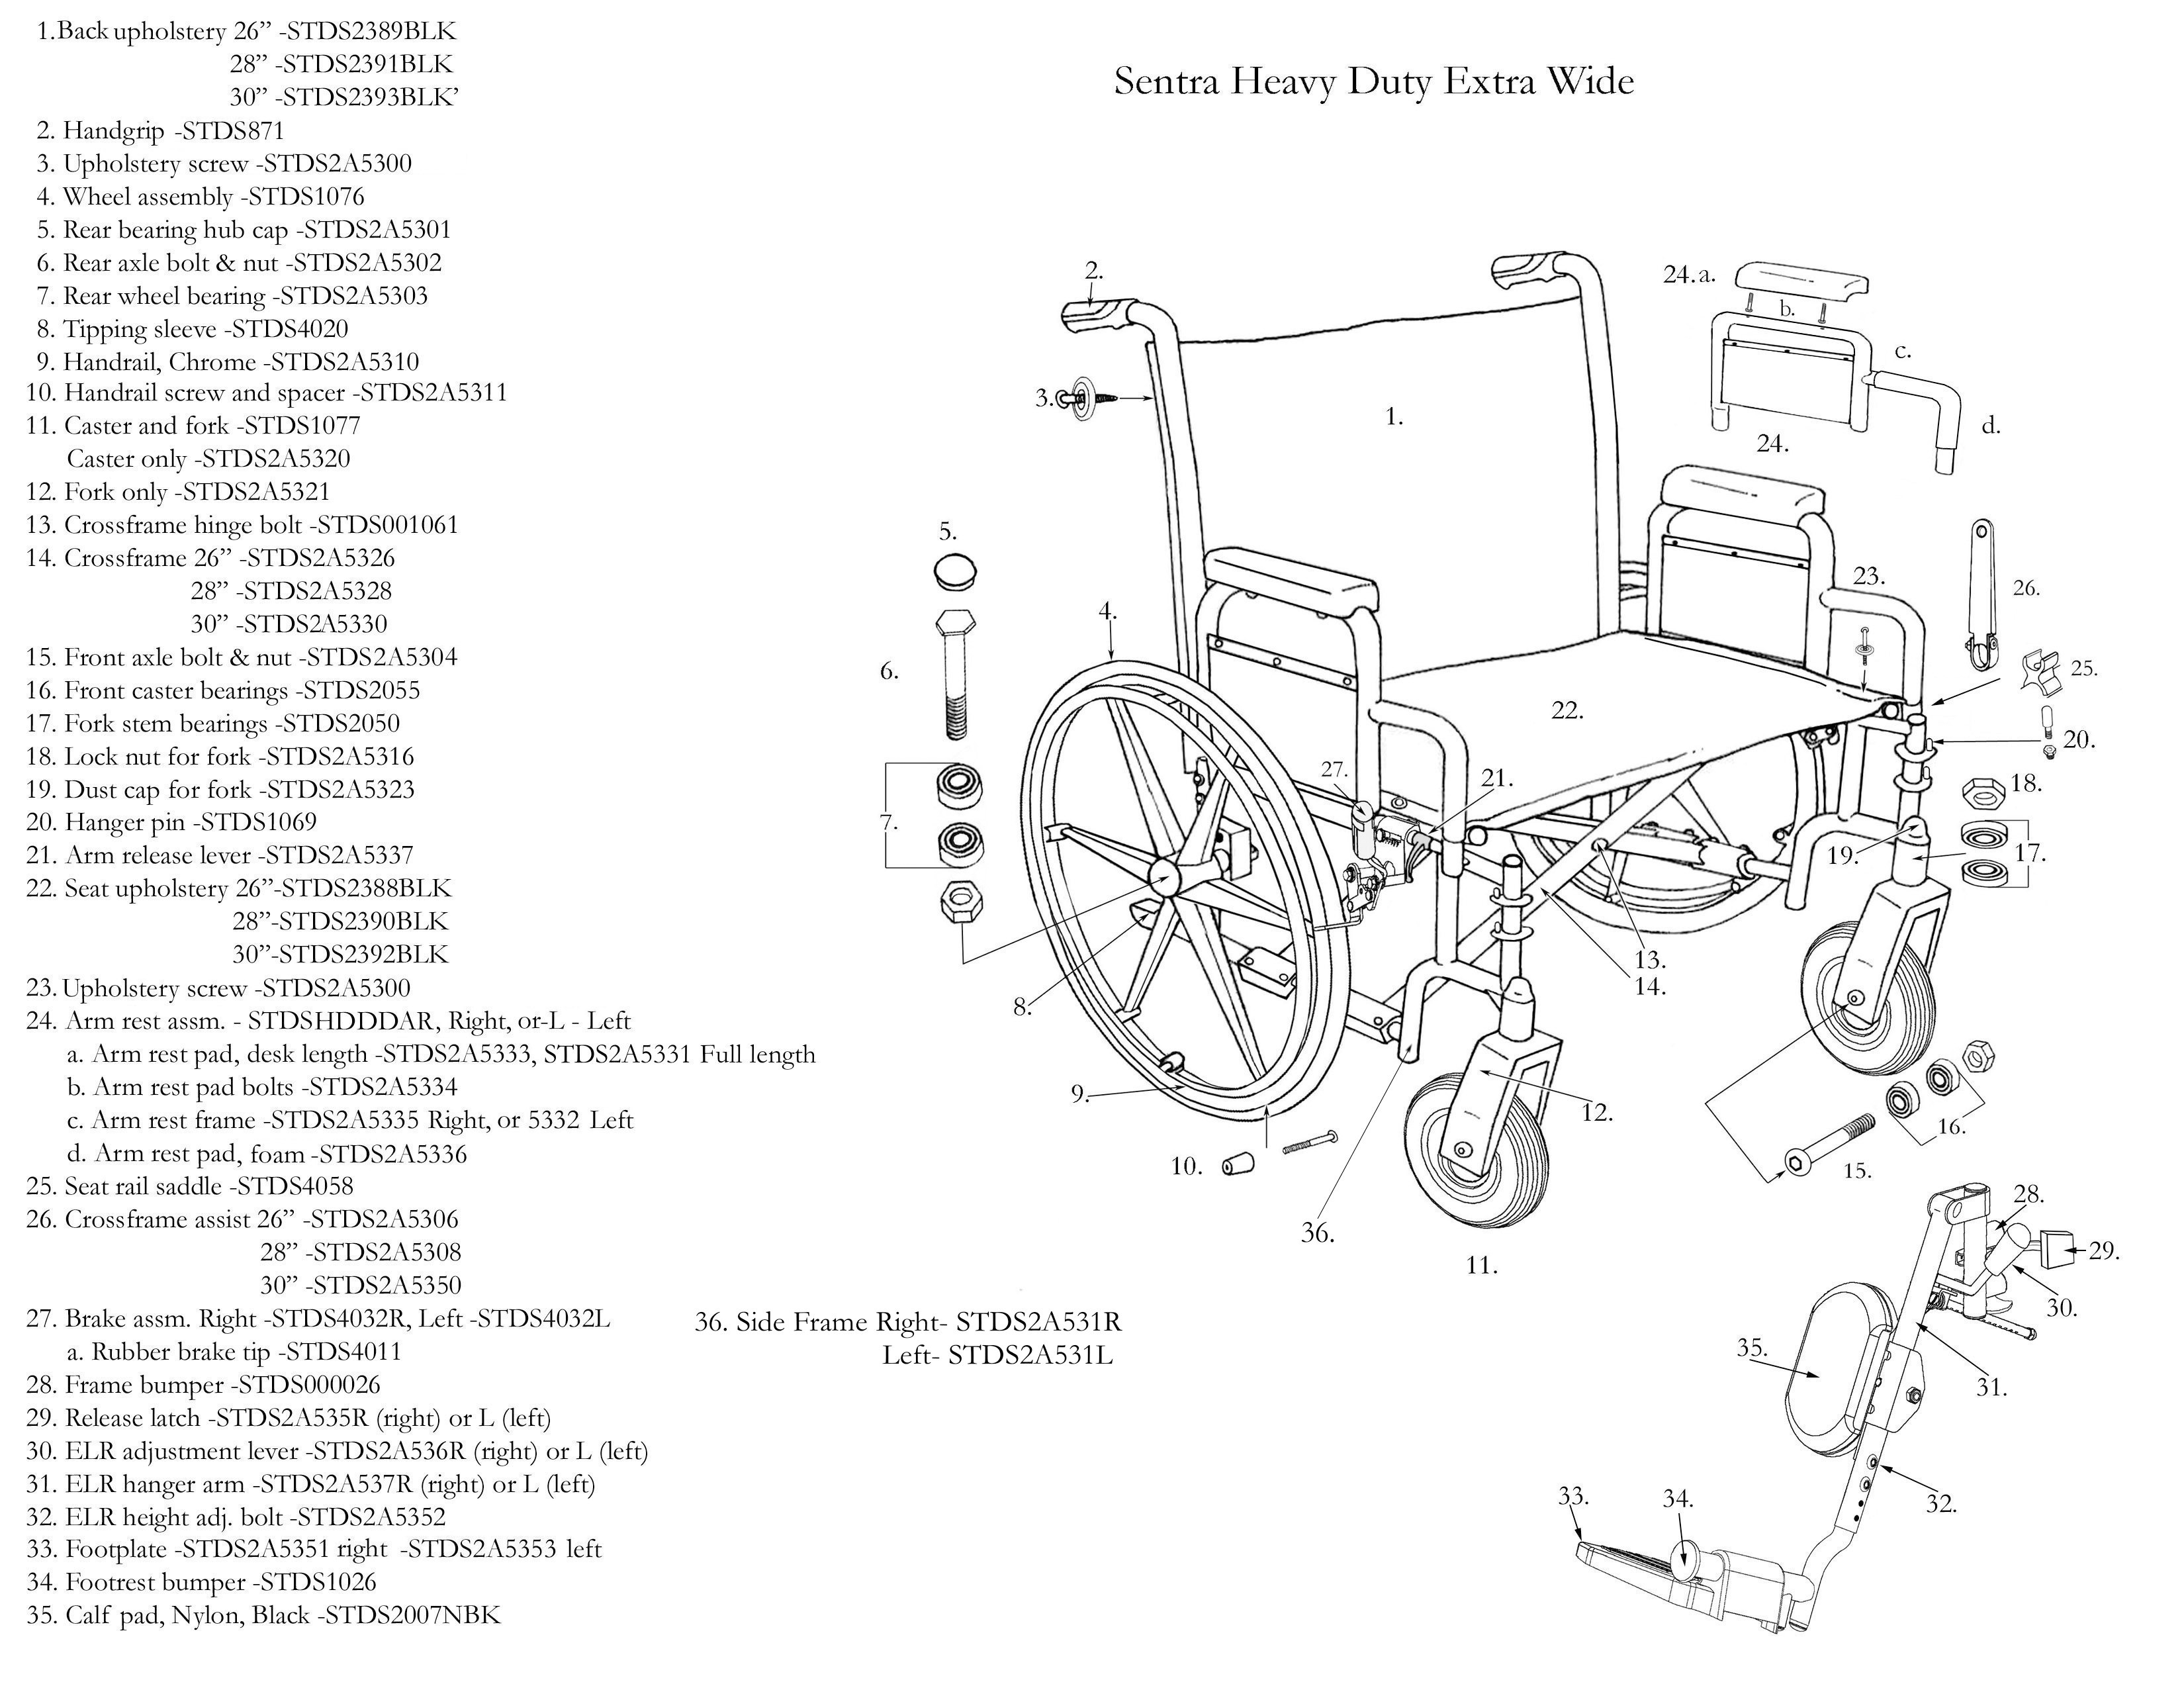 Drive Medical Deluxe Sentra Heavy Duty, Extra Extra Wide Bariatric  Wheelchair